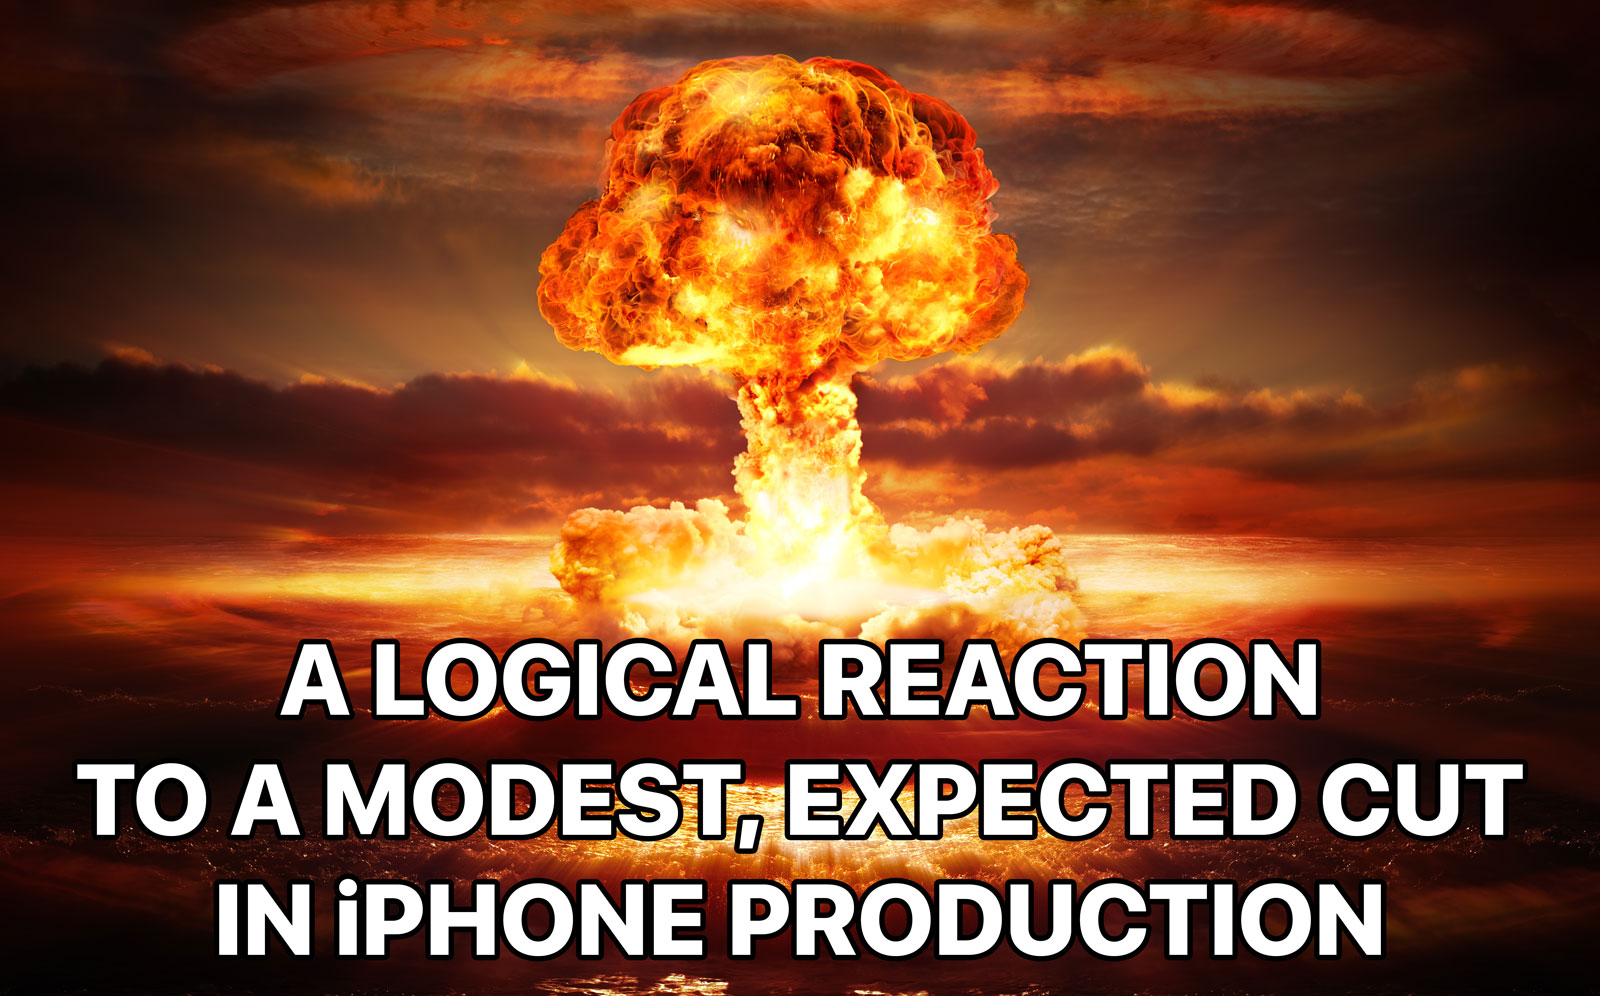 iphone production cut reaction